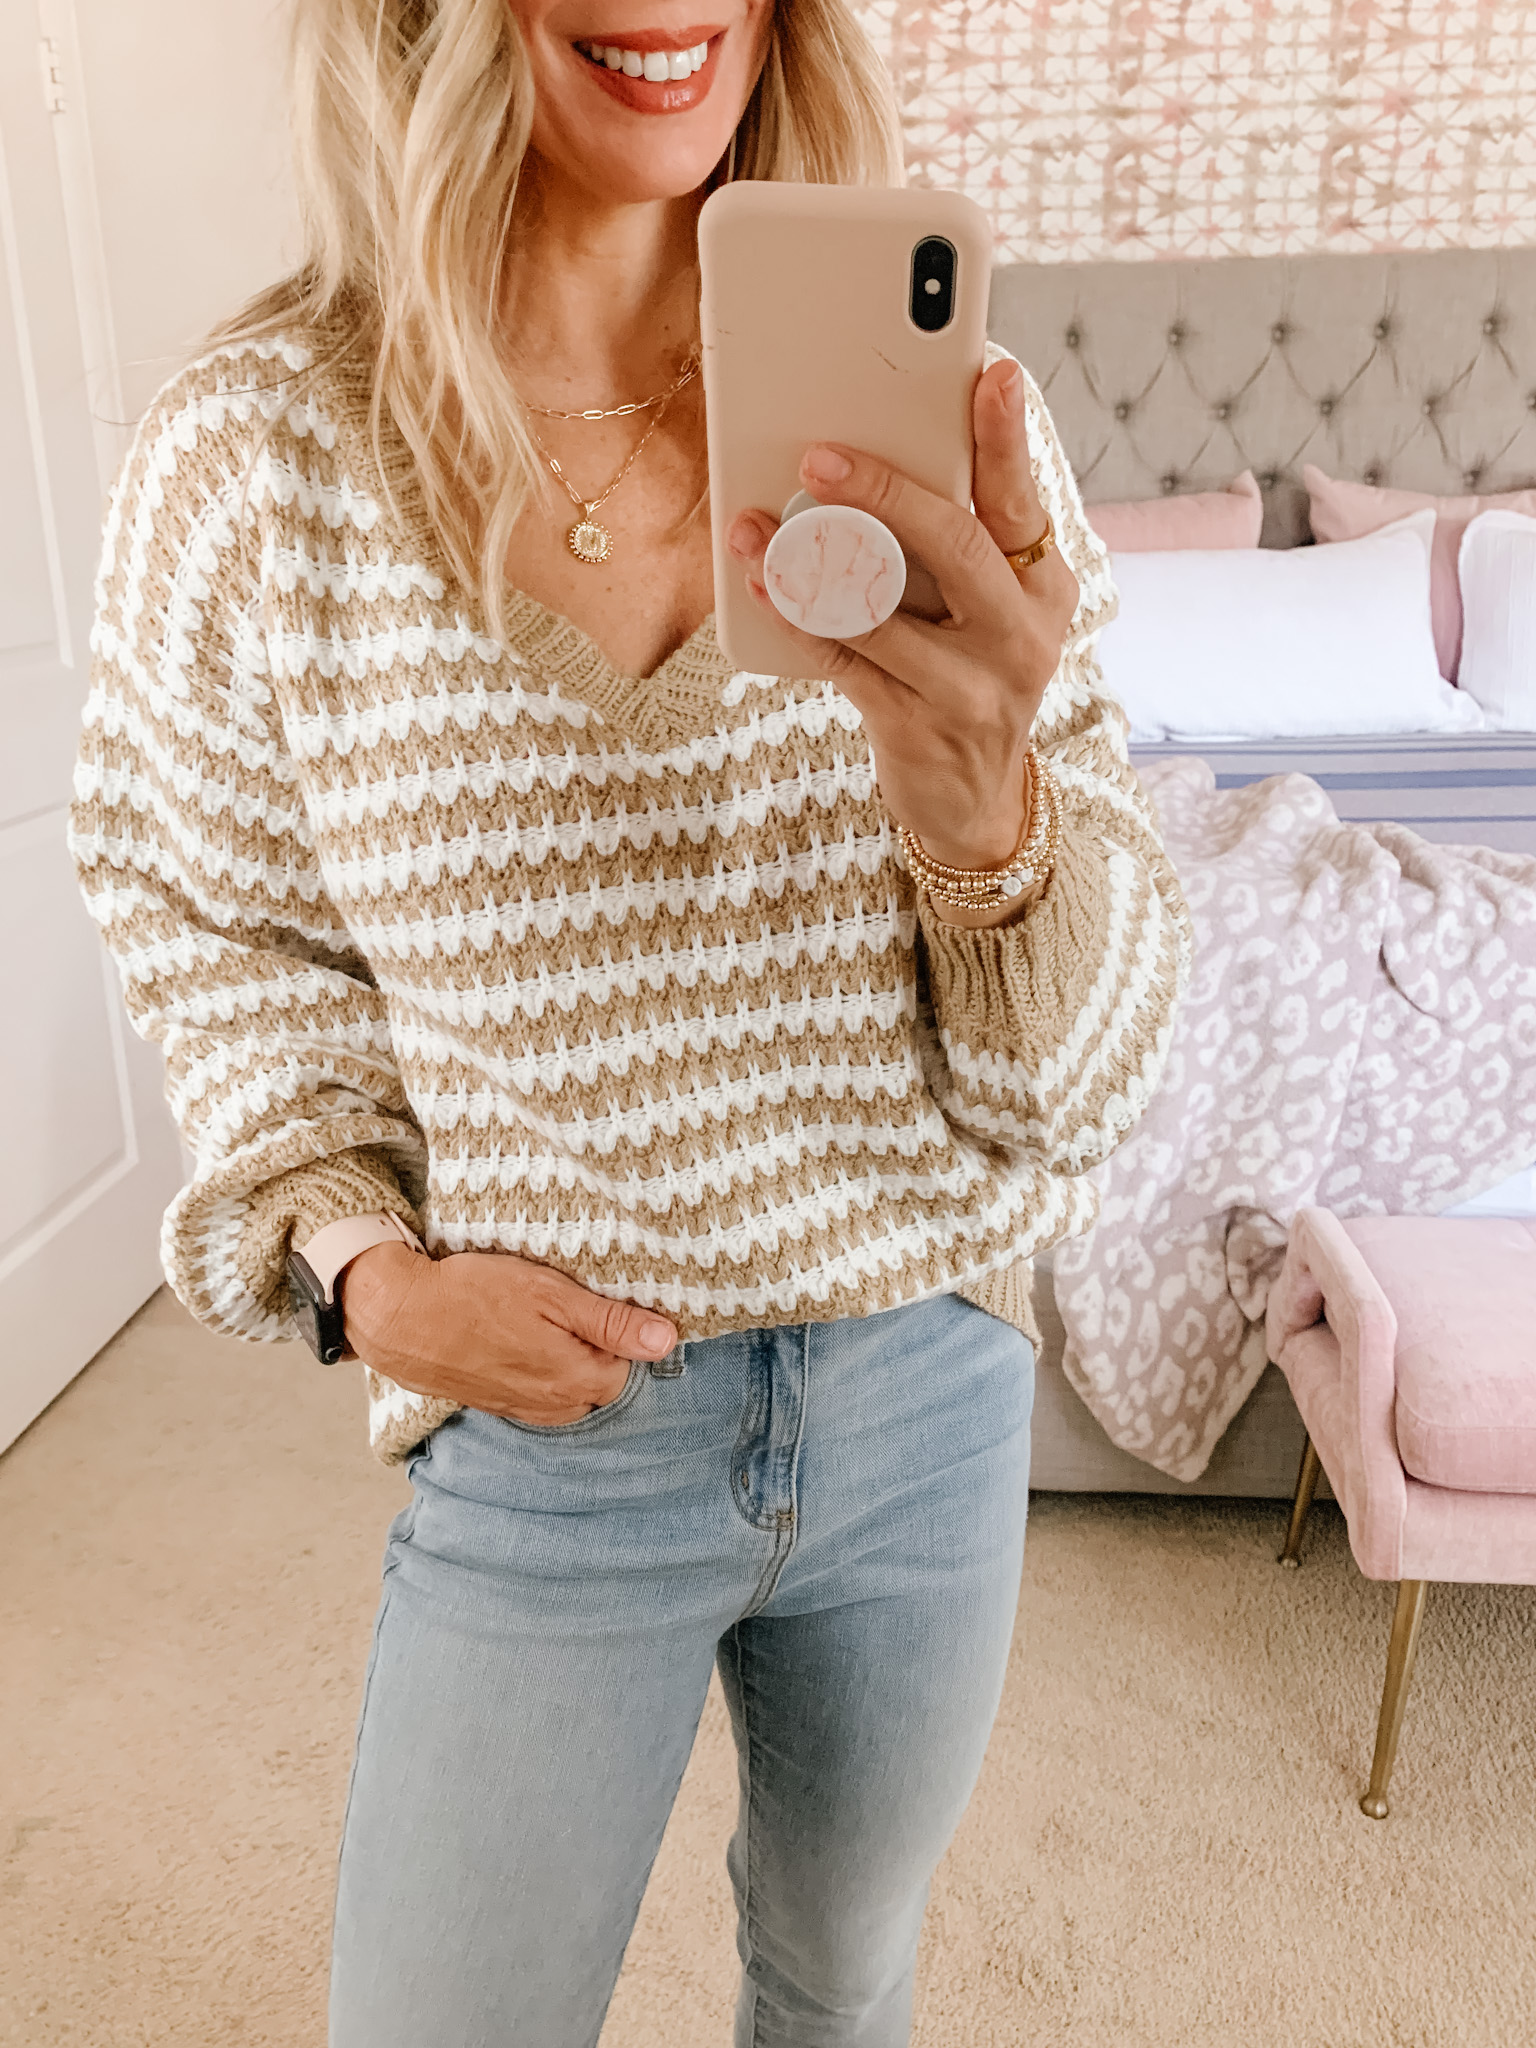 Amazon Fashion, Striped Sweater, Jeans, Booties